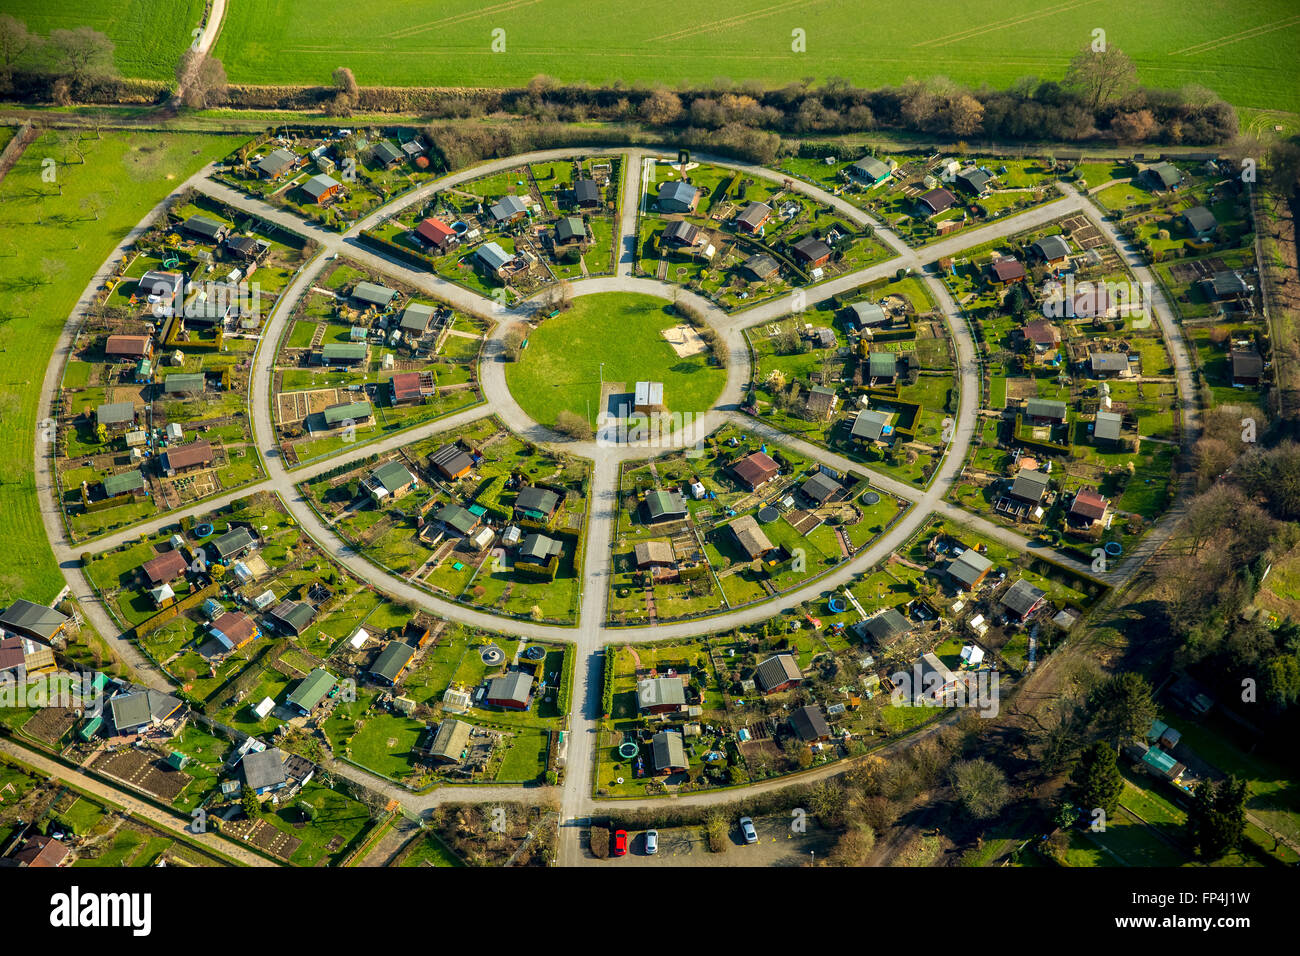 Aerial View Round Allotment Gardens Cacilienstrasse Allotments